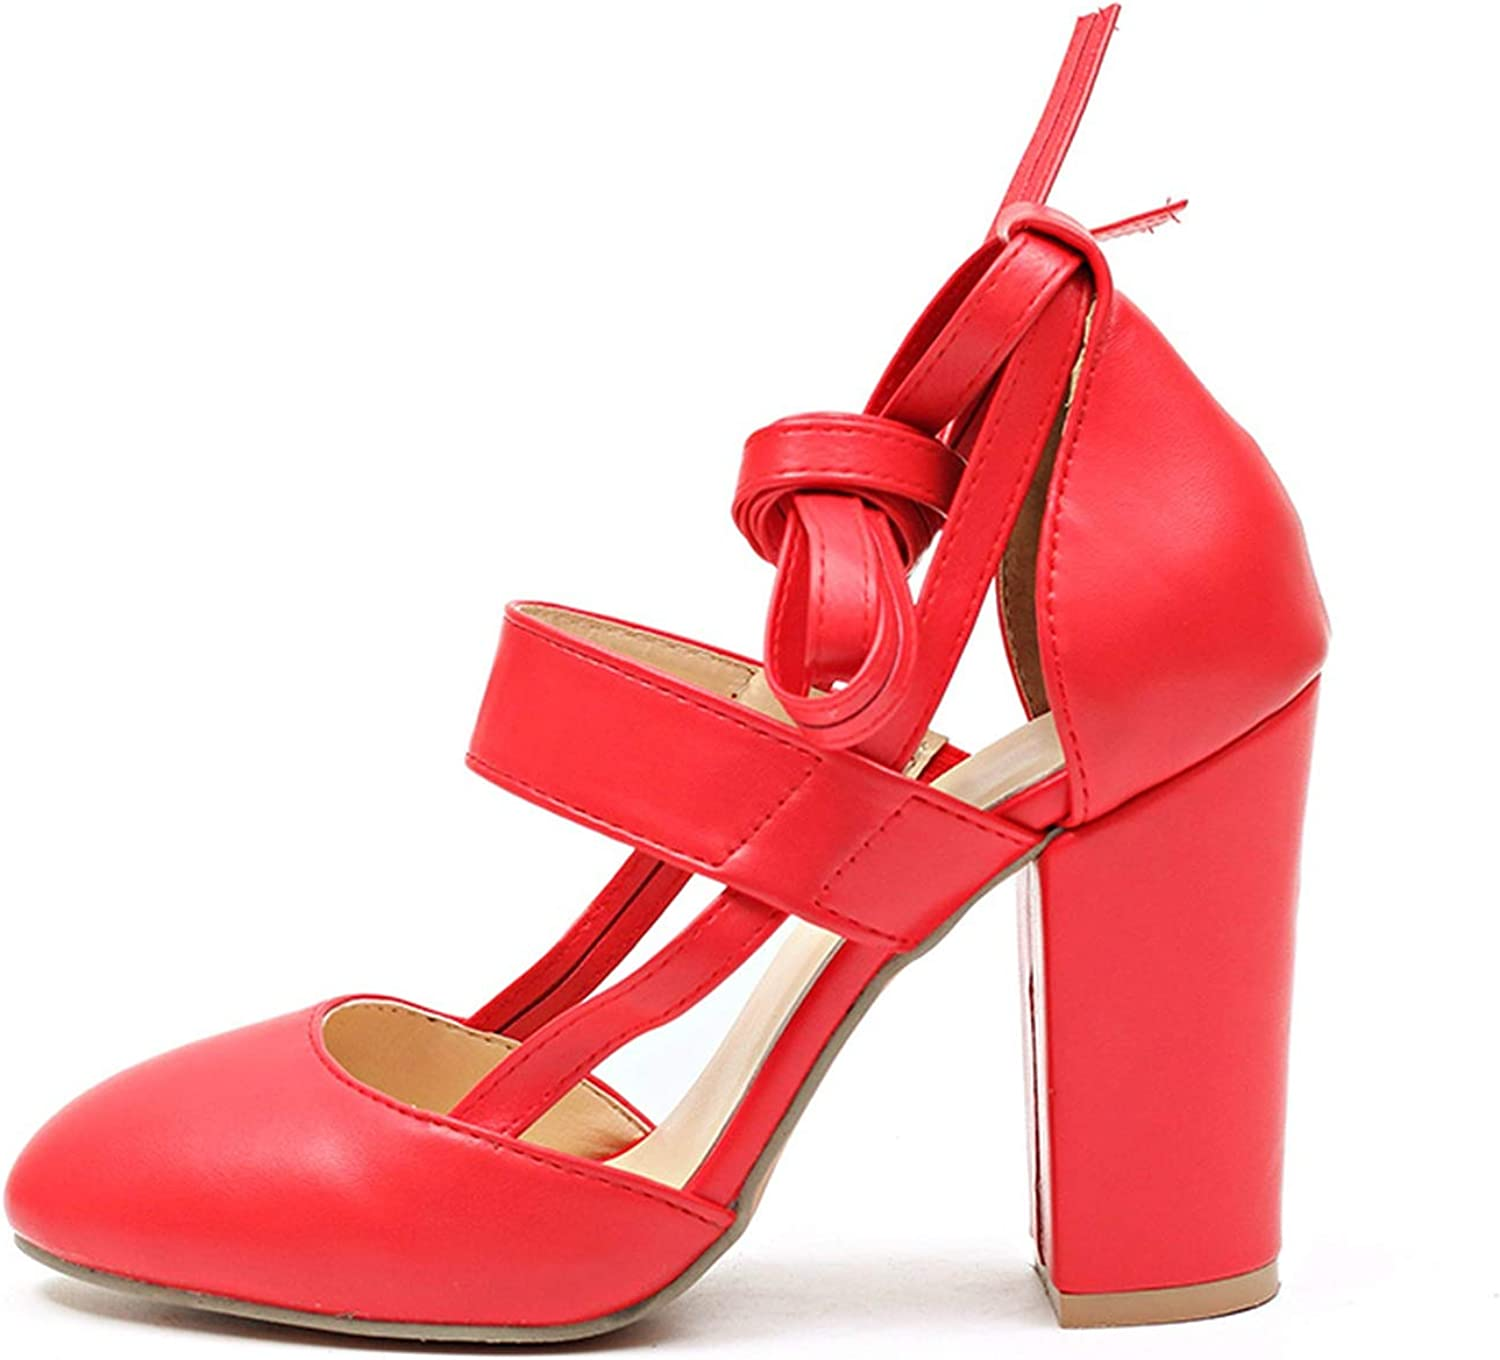 Plus Size Female Ankle Strap High Heels Flock shoes Thick Heel,Red-D2314,6